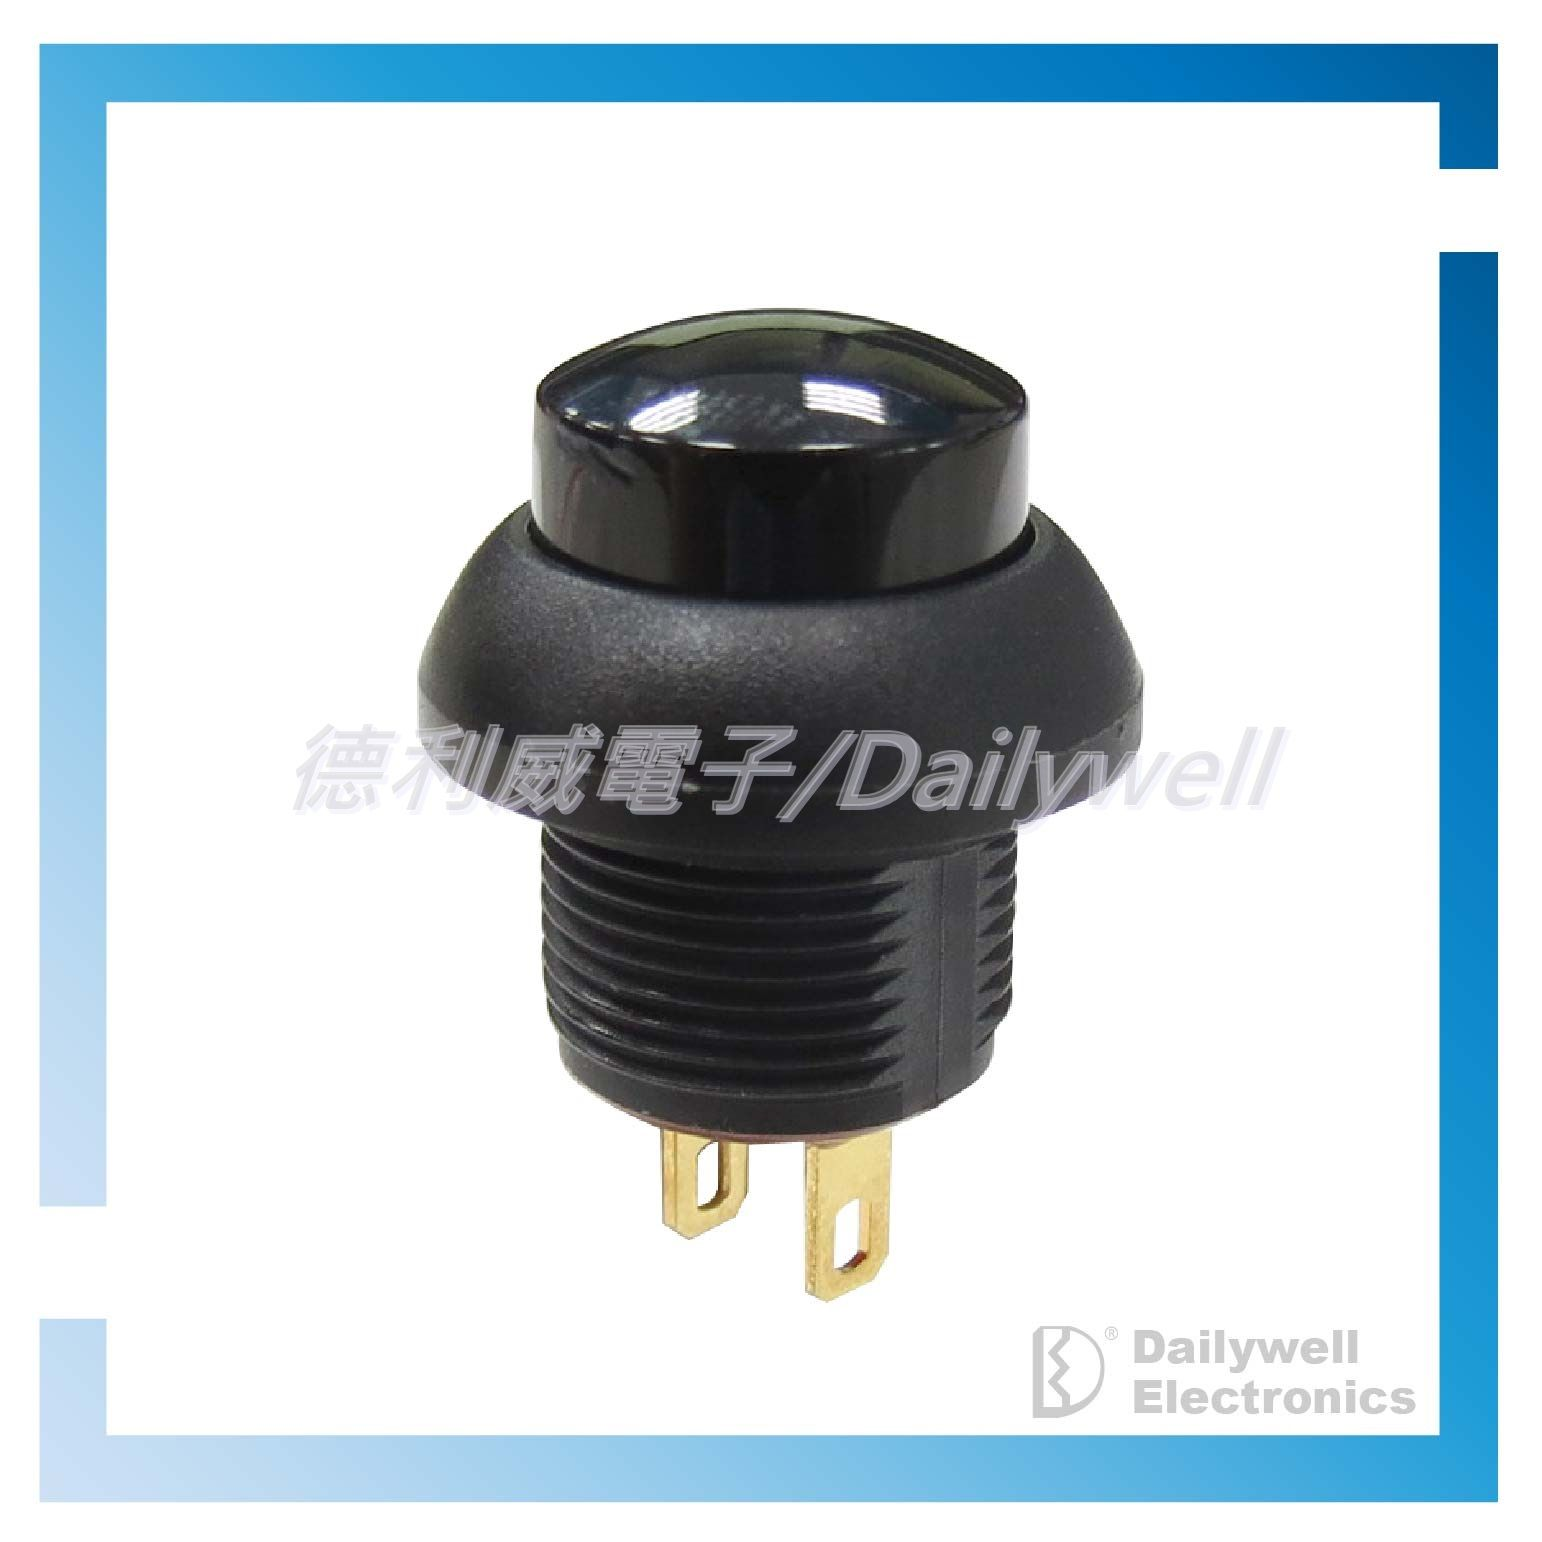 Sealed Miniature Pushbutton Switches Switch Supplier